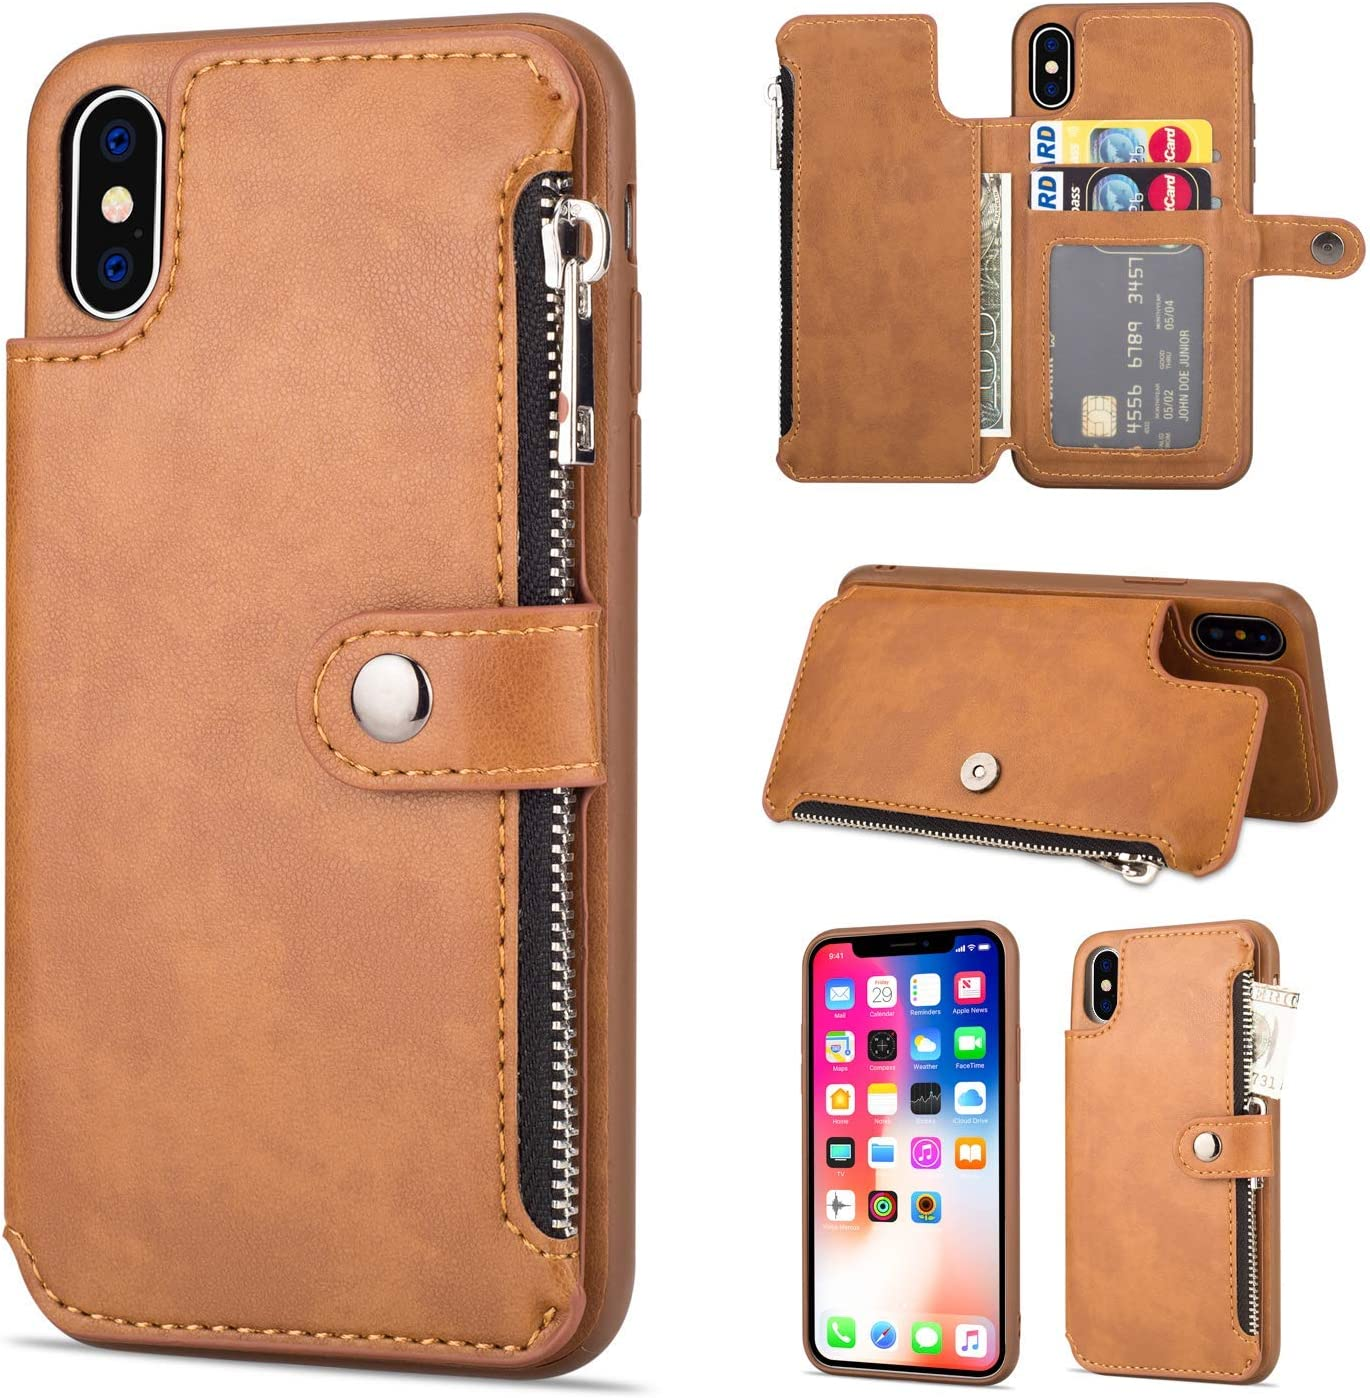 Jennyfly Galaxy S8 Plus Phone Clos Case Button Fashion SALENEW very Our shop OFFers the best service popular Magnetic